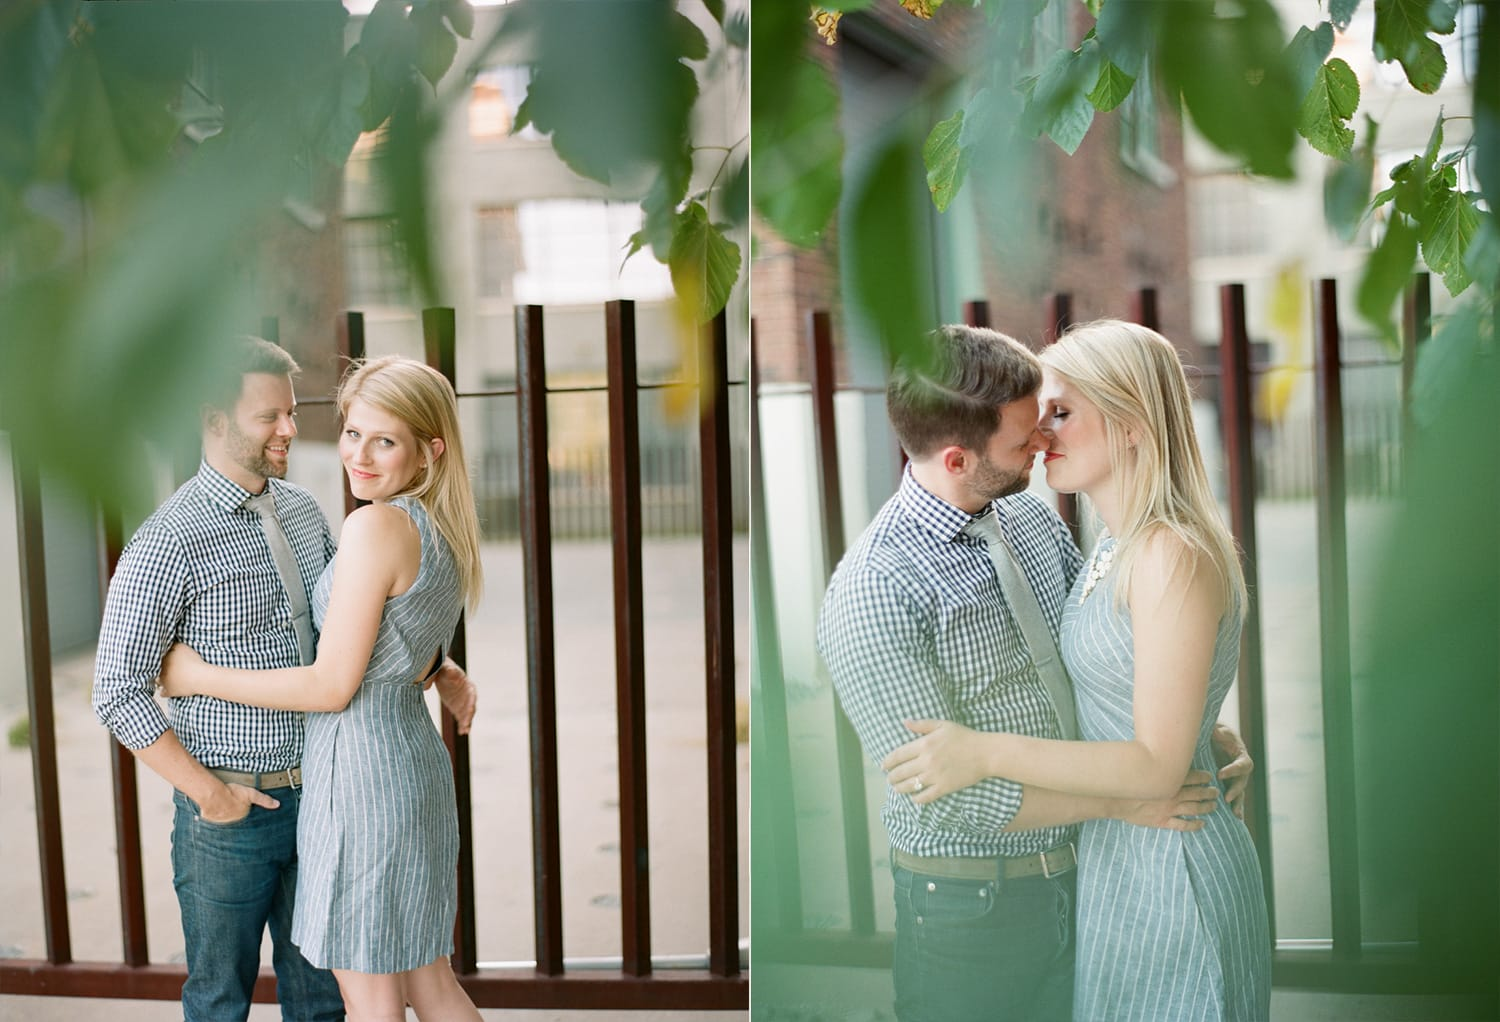 DEEP_ELLUM_TX_FILM_ENGAGEMENT_SHOOT__MATTHEW_MOORE_PHOTOGRAPHY_PAN_009.jpg